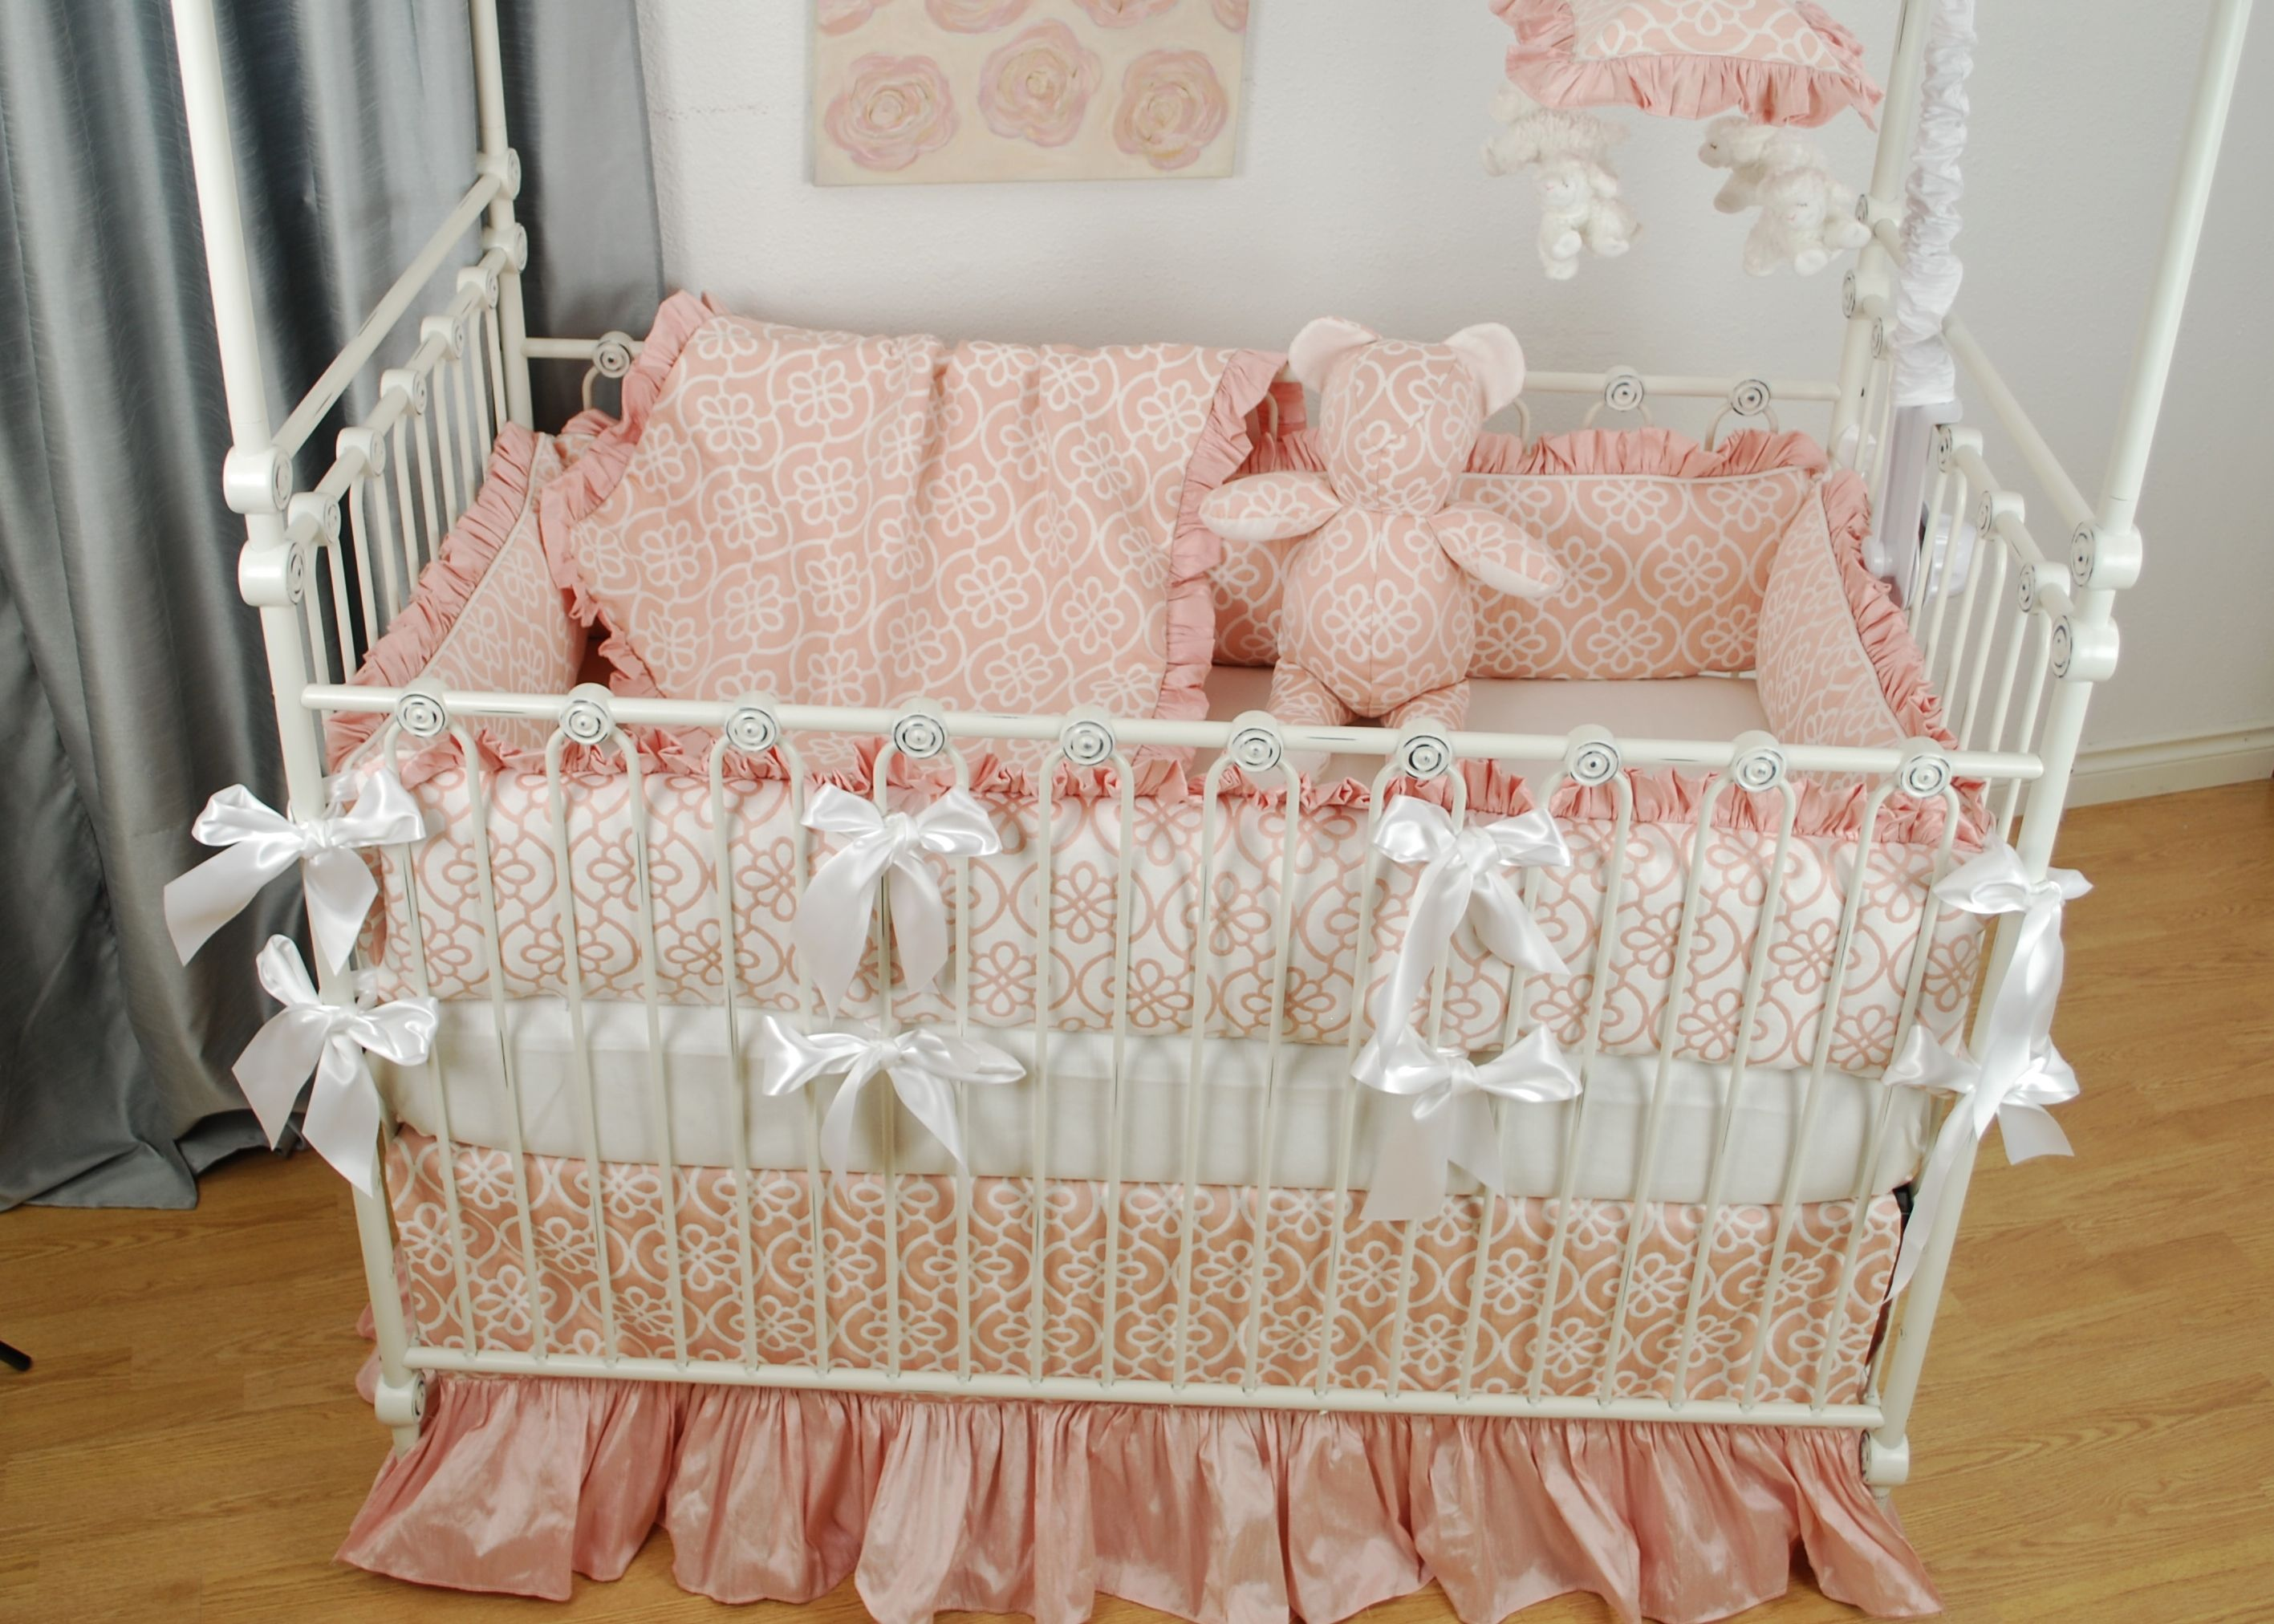 Pink Floral And Silk Crib Bedding With White Bows On A Bratt Decor